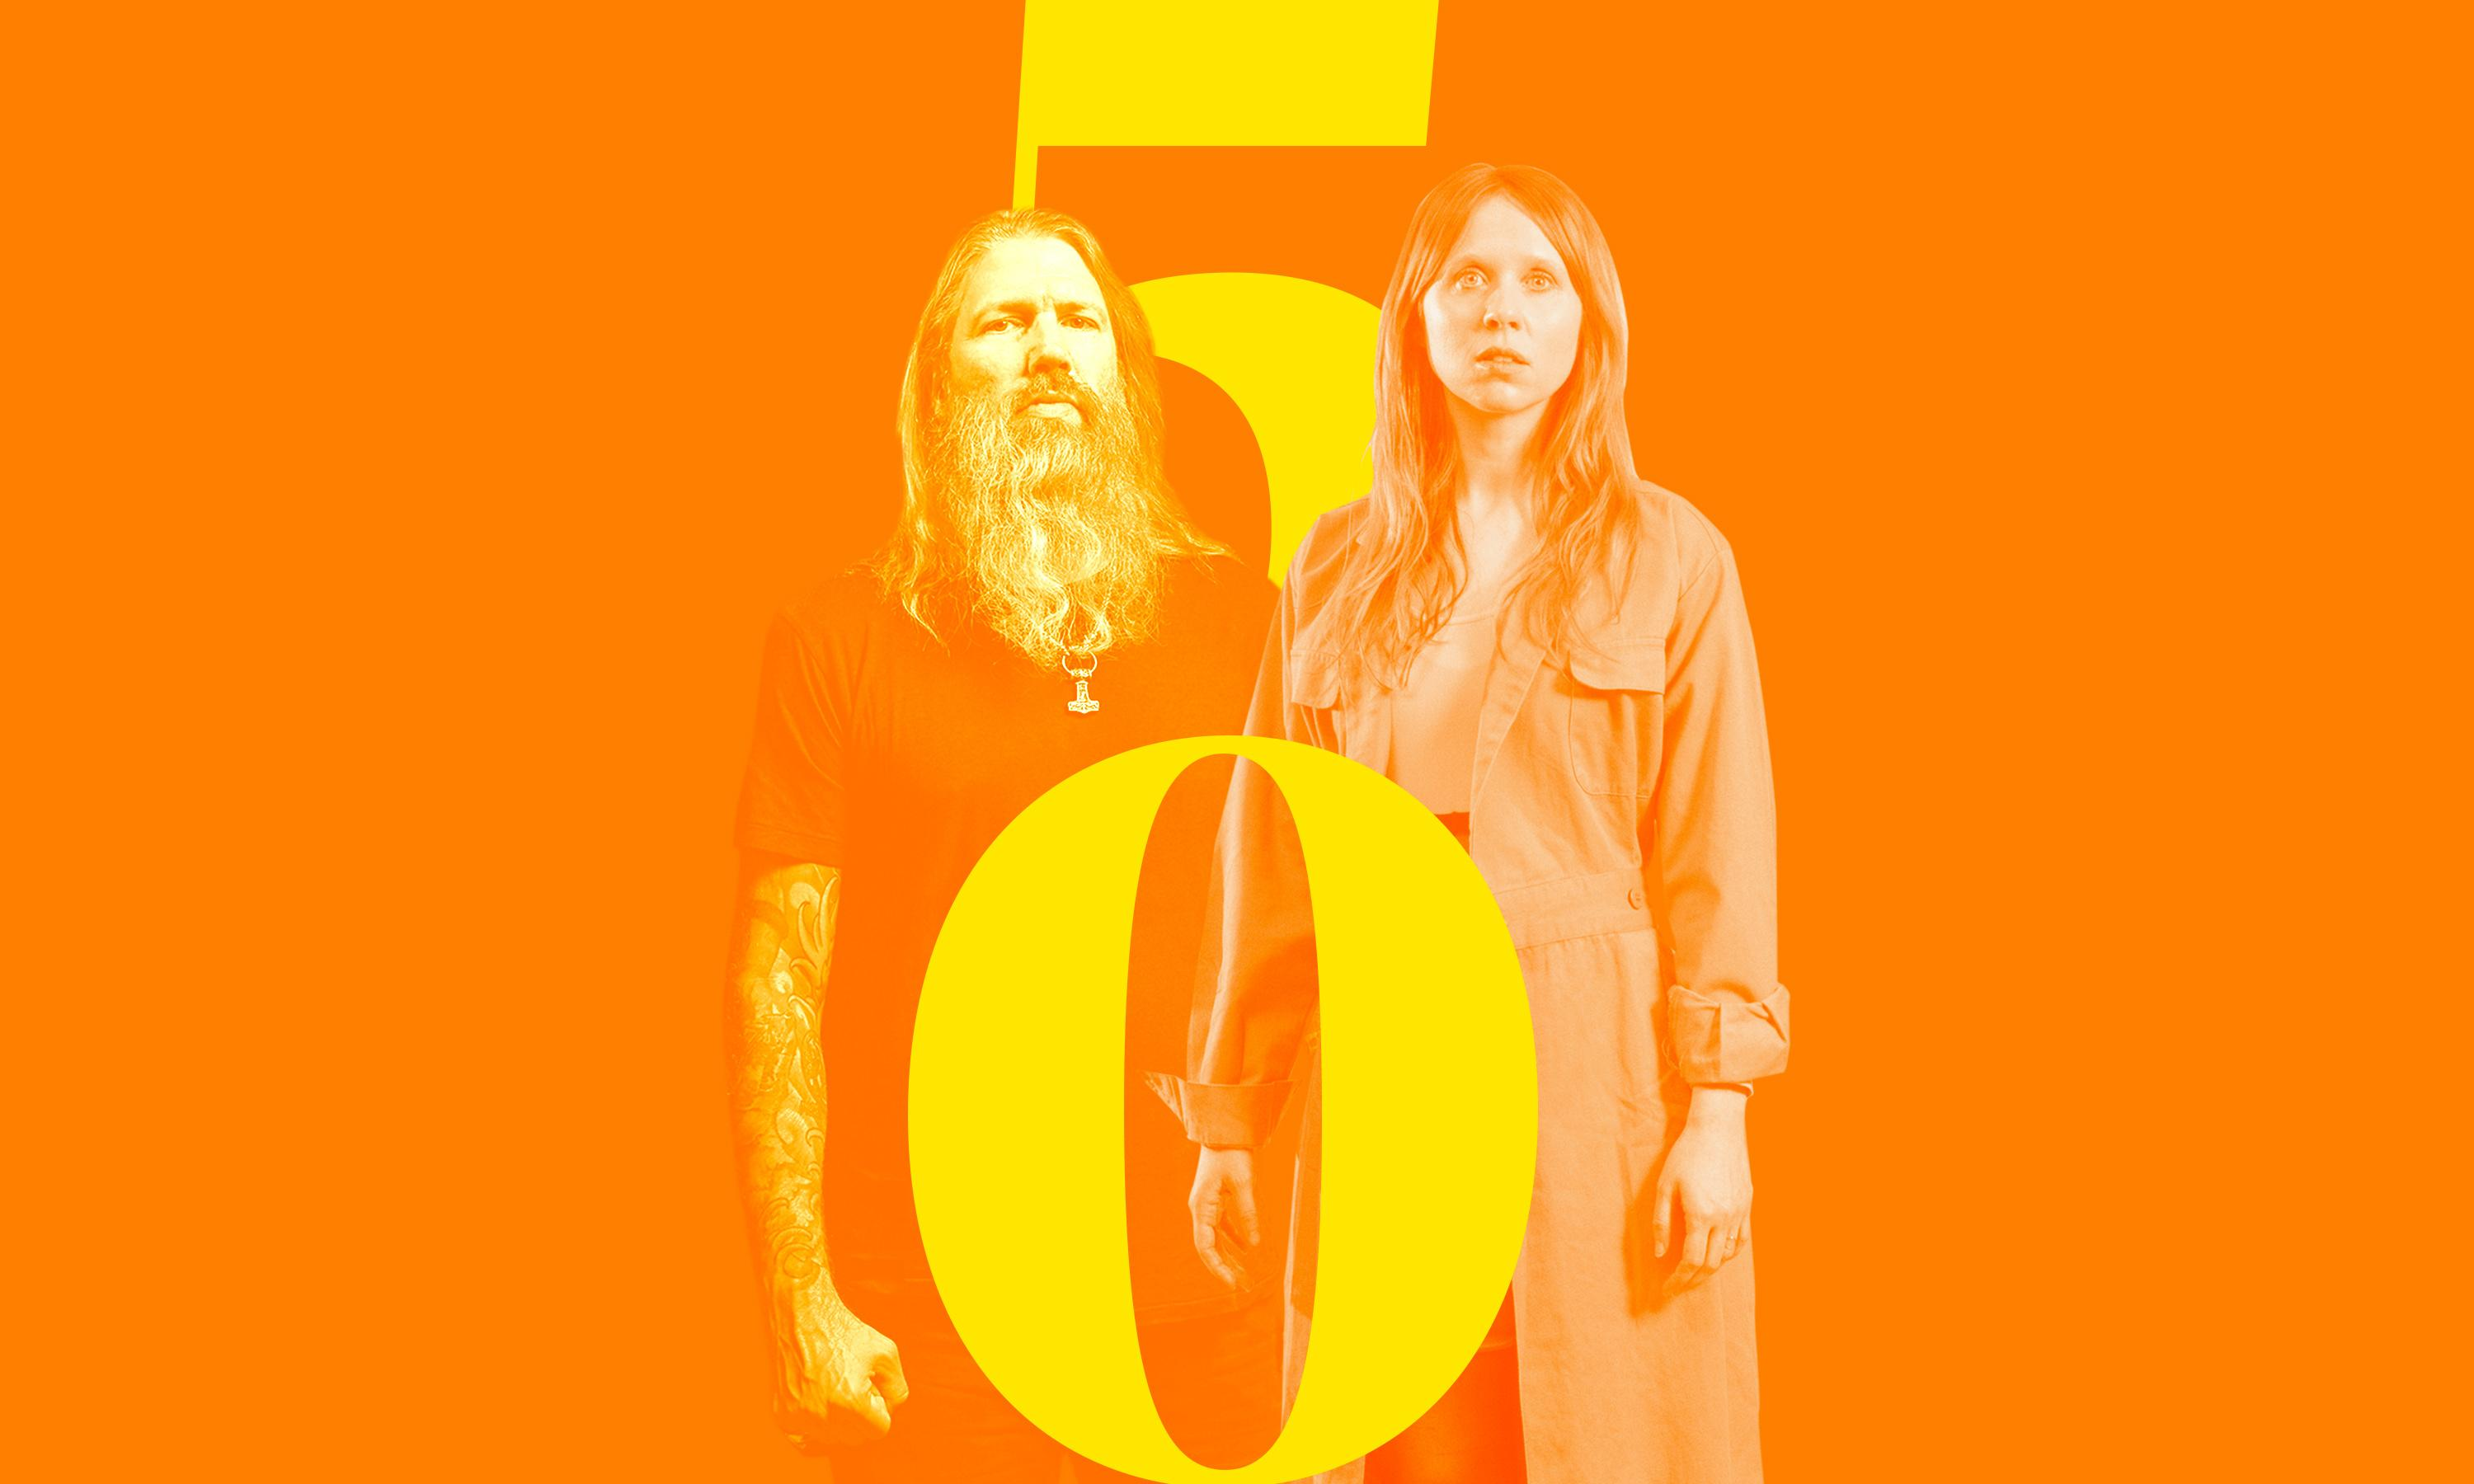 50 great tracks for April by Holly Herndon, Amon Amarth, Shura and others